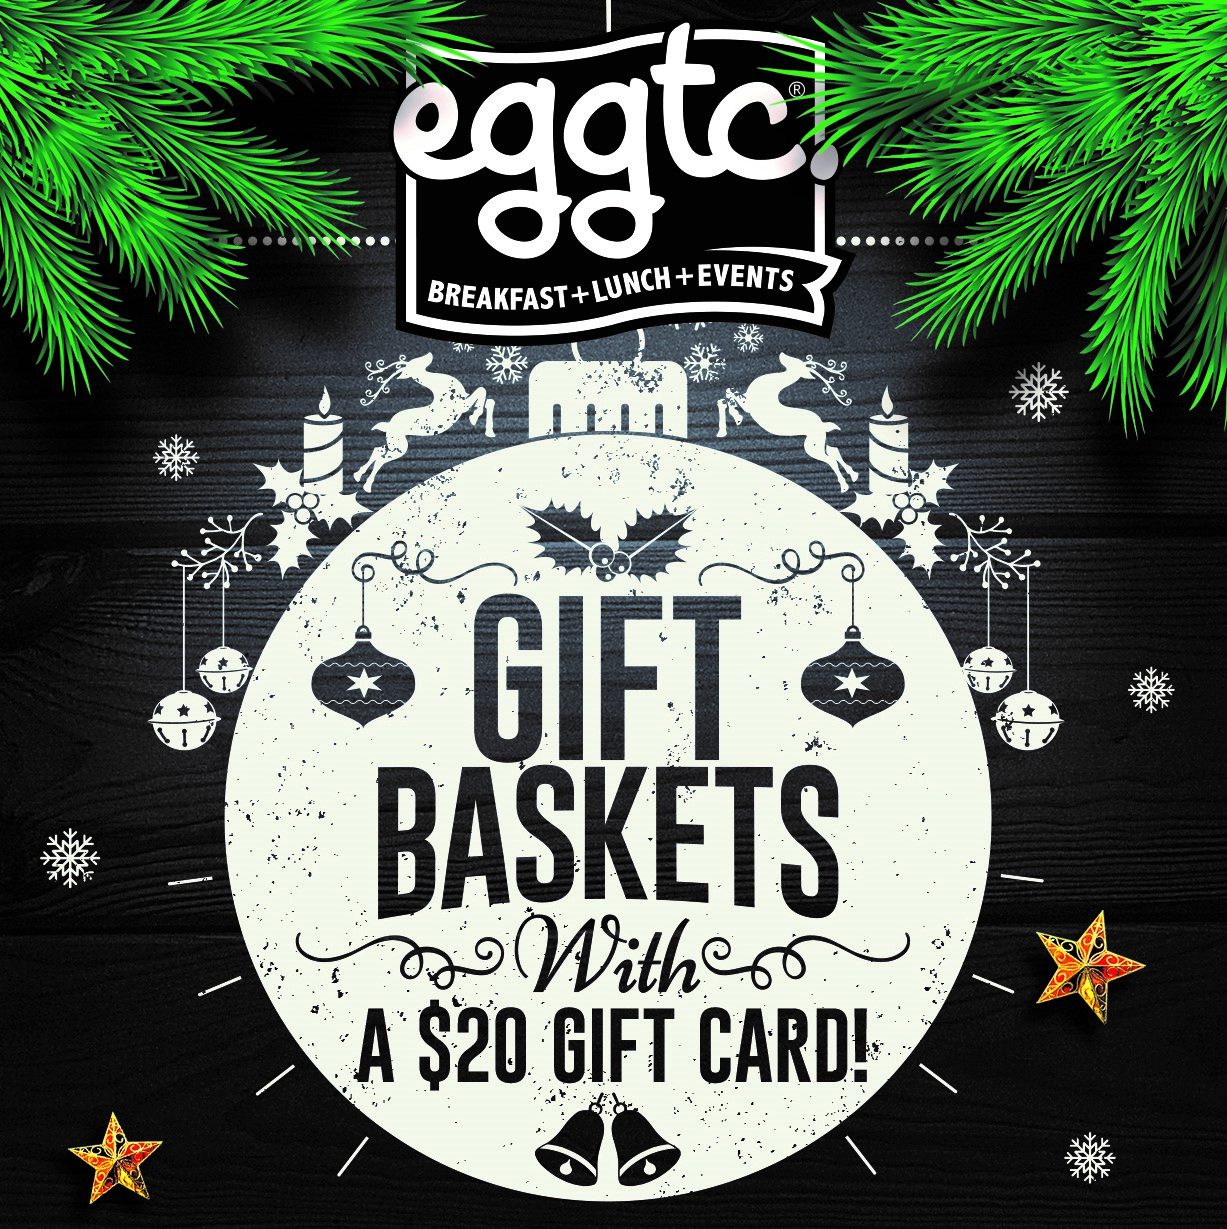 Gift the gift of eggcellent taste this holiday season – with an eggtc. gift basket!